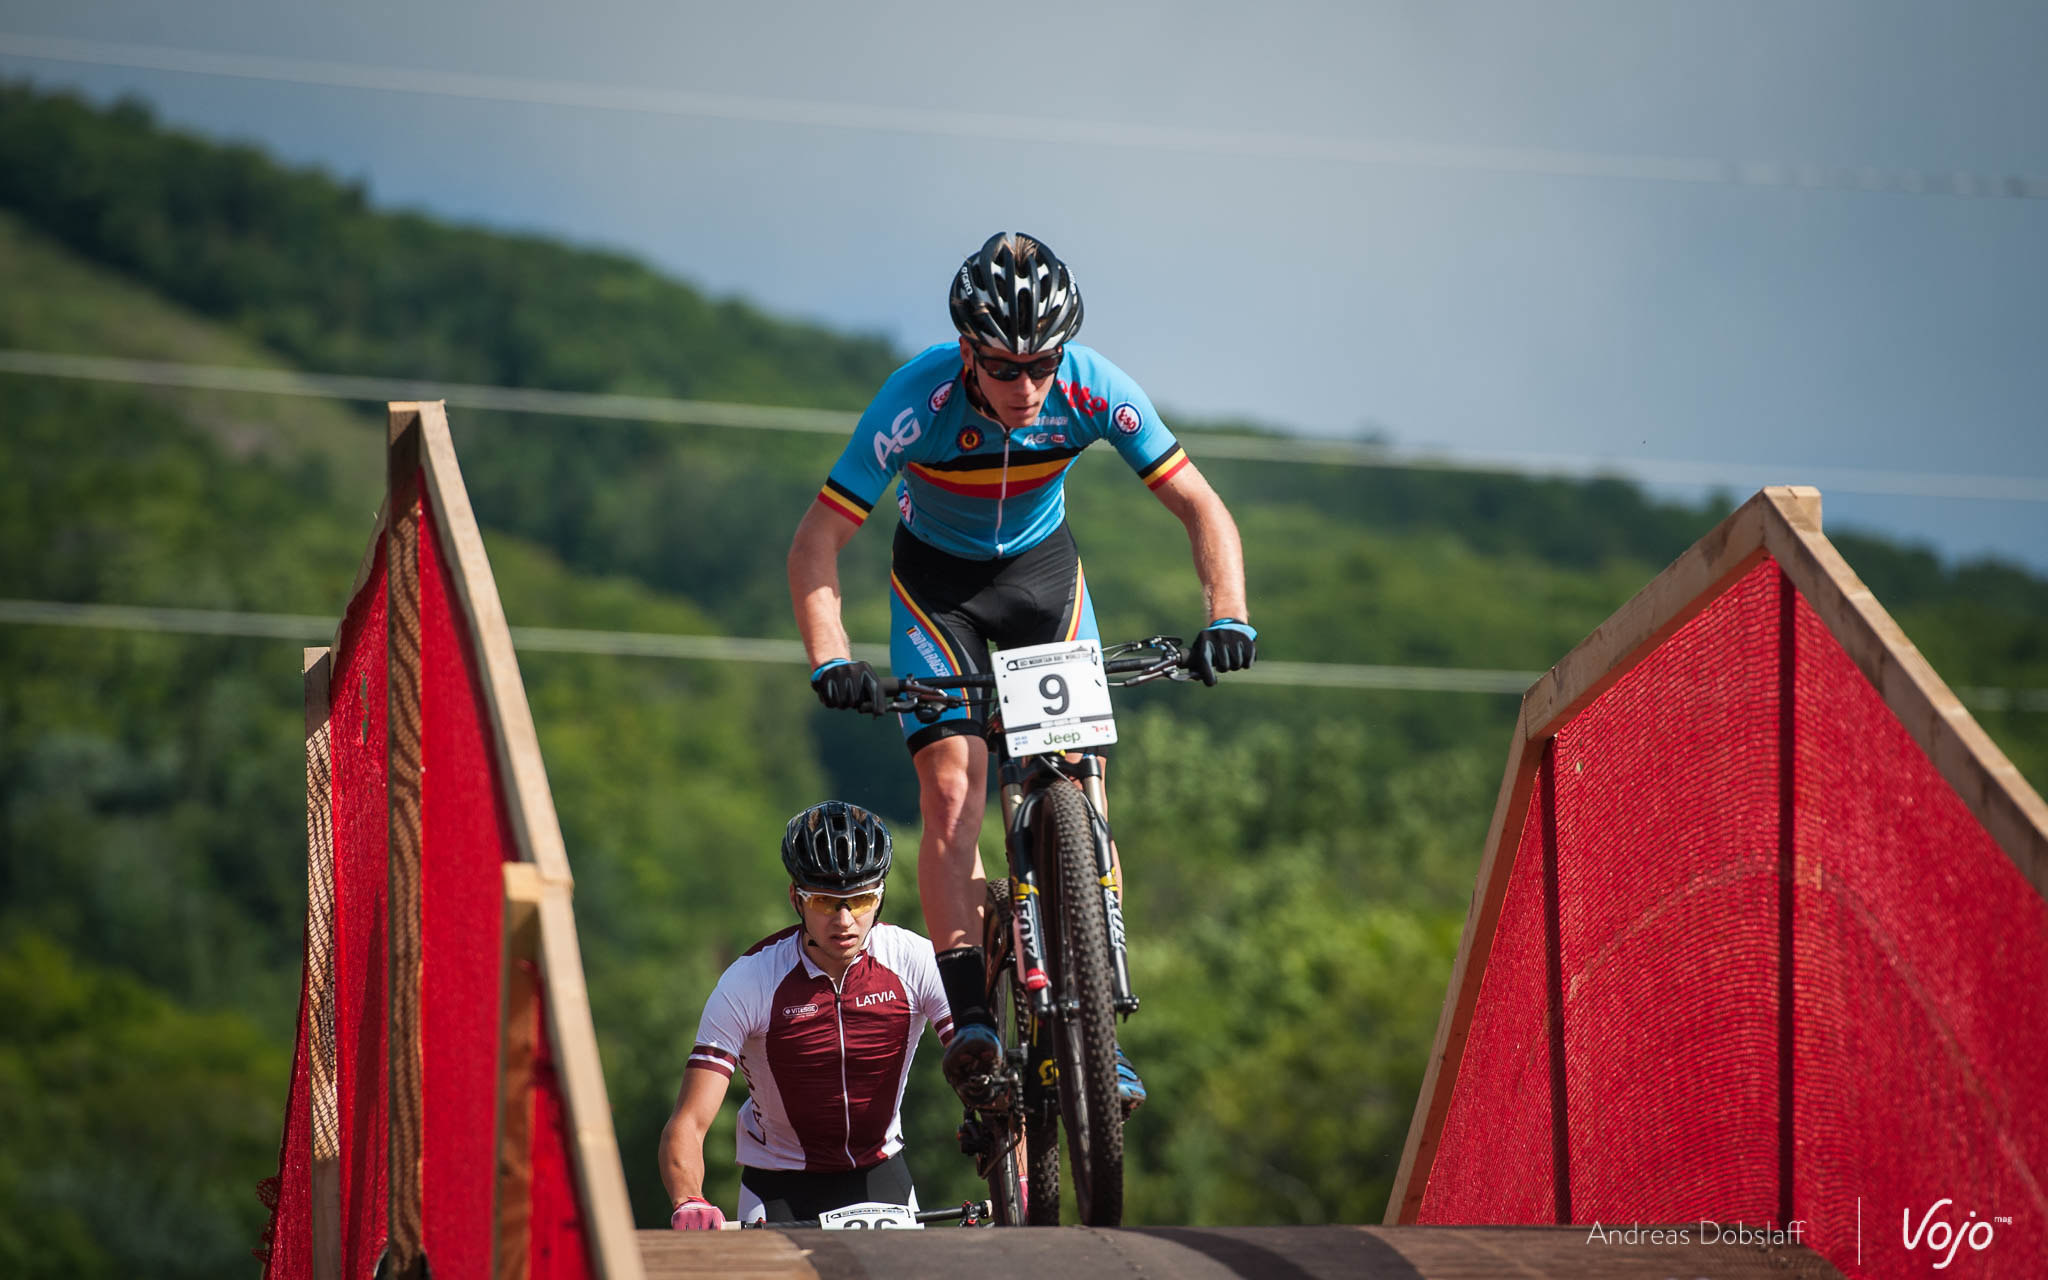 World_Cup_XC_Mont_Saint_Anne_MSA_2015_Carod_Copyright_ADobslaff_VojoMag-3